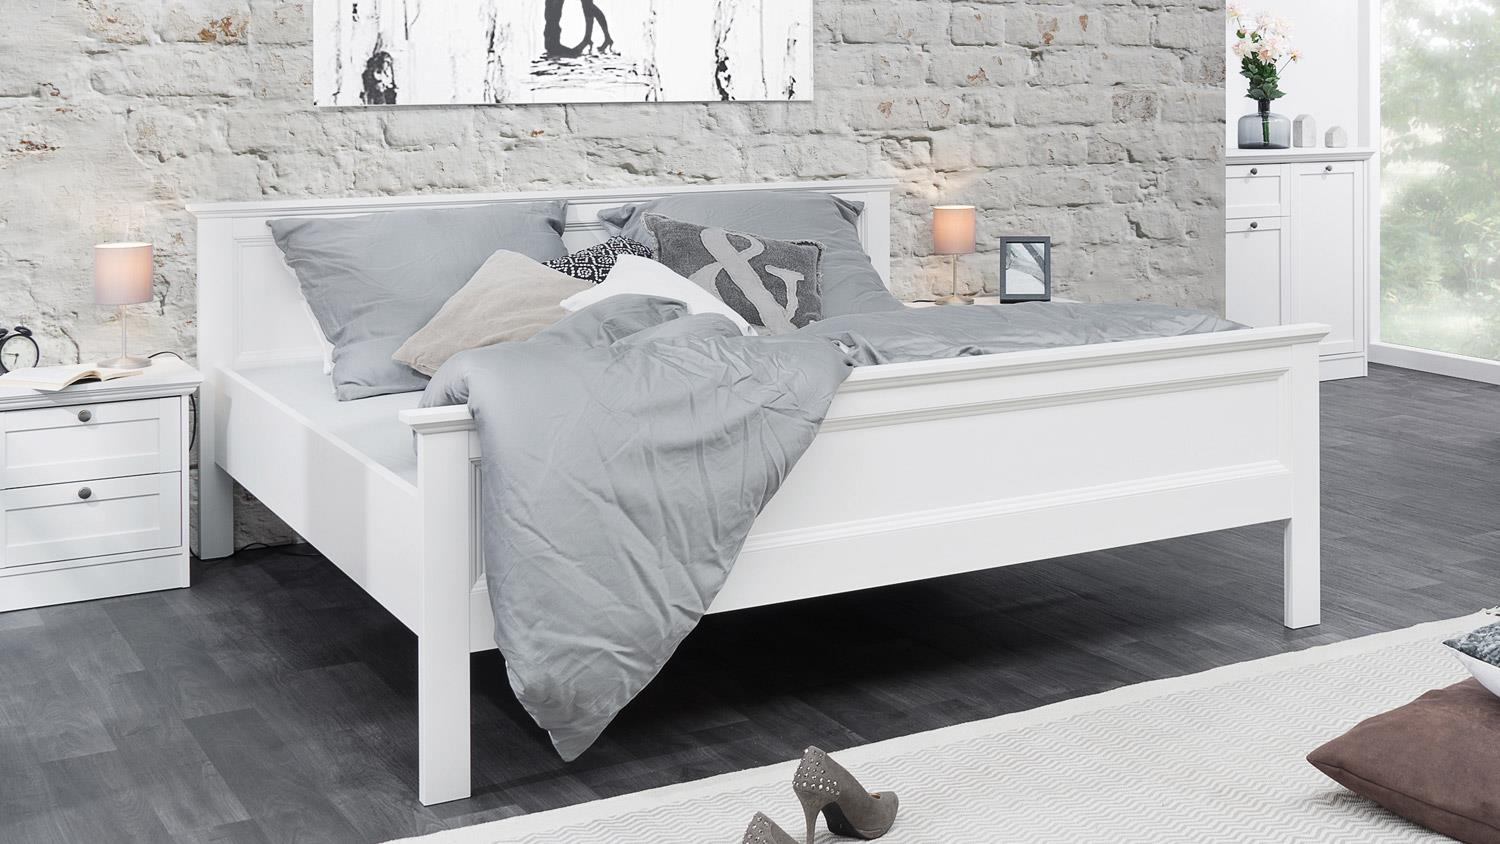 bett landwood bettgestell in wei mit kopfteil 180x200 cm landhausstil. Black Bedroom Furniture Sets. Home Design Ideas